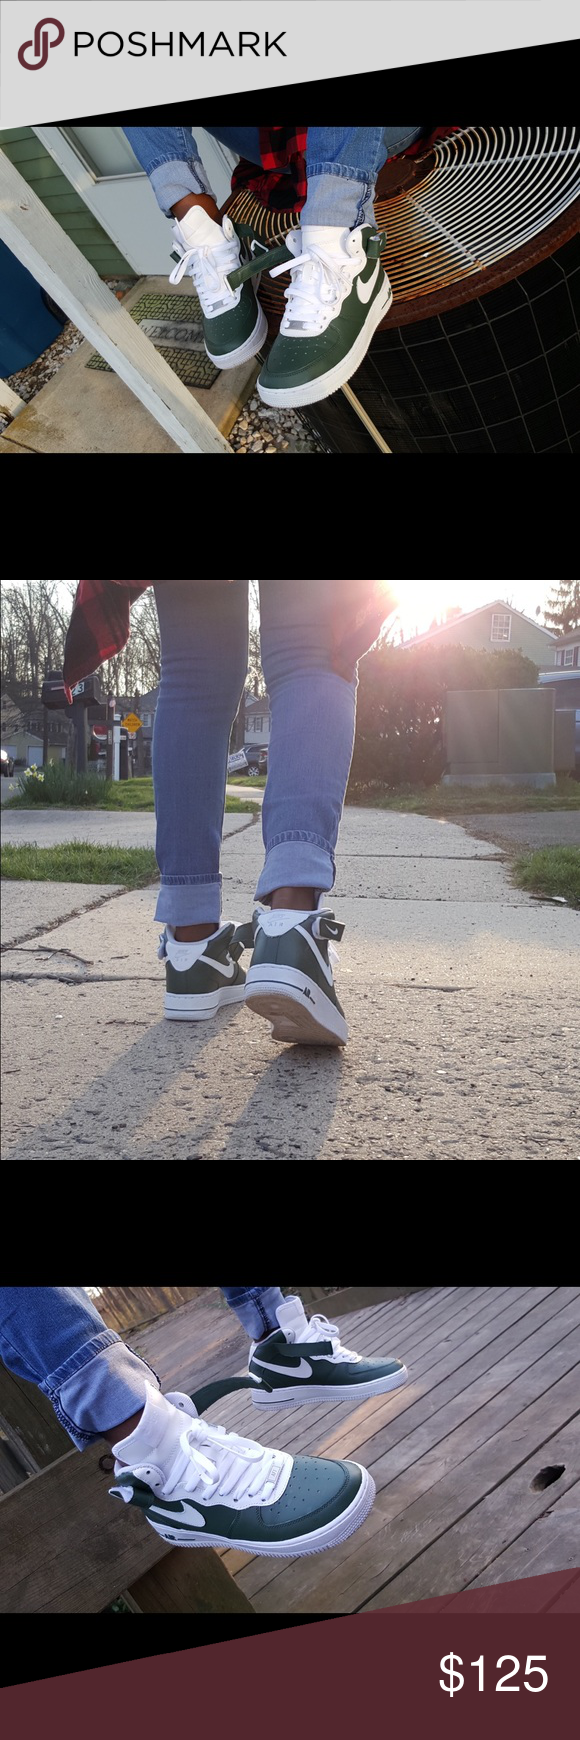 buy online 99b3c 2da0f khaki green Nike Air Force 1 (high top) boys size 7   girls size 8.5, custom  color, worn only in photos Nike Shoes Sneakers